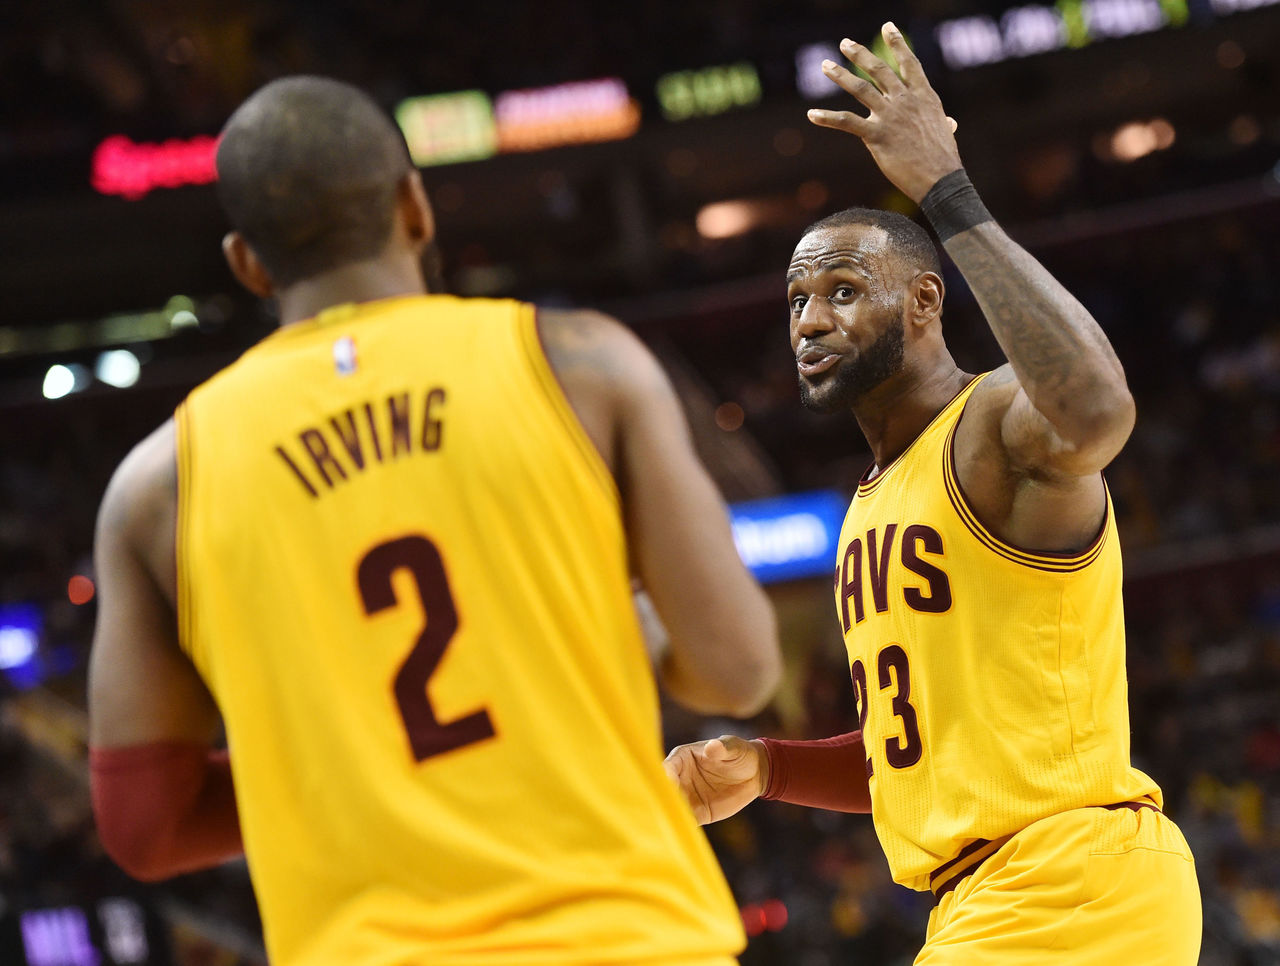 Cropped 2017 02 28t030338z 1044526632 nocid rtrmadp 3 nba milwaukee bucks at cleveland cavaliers